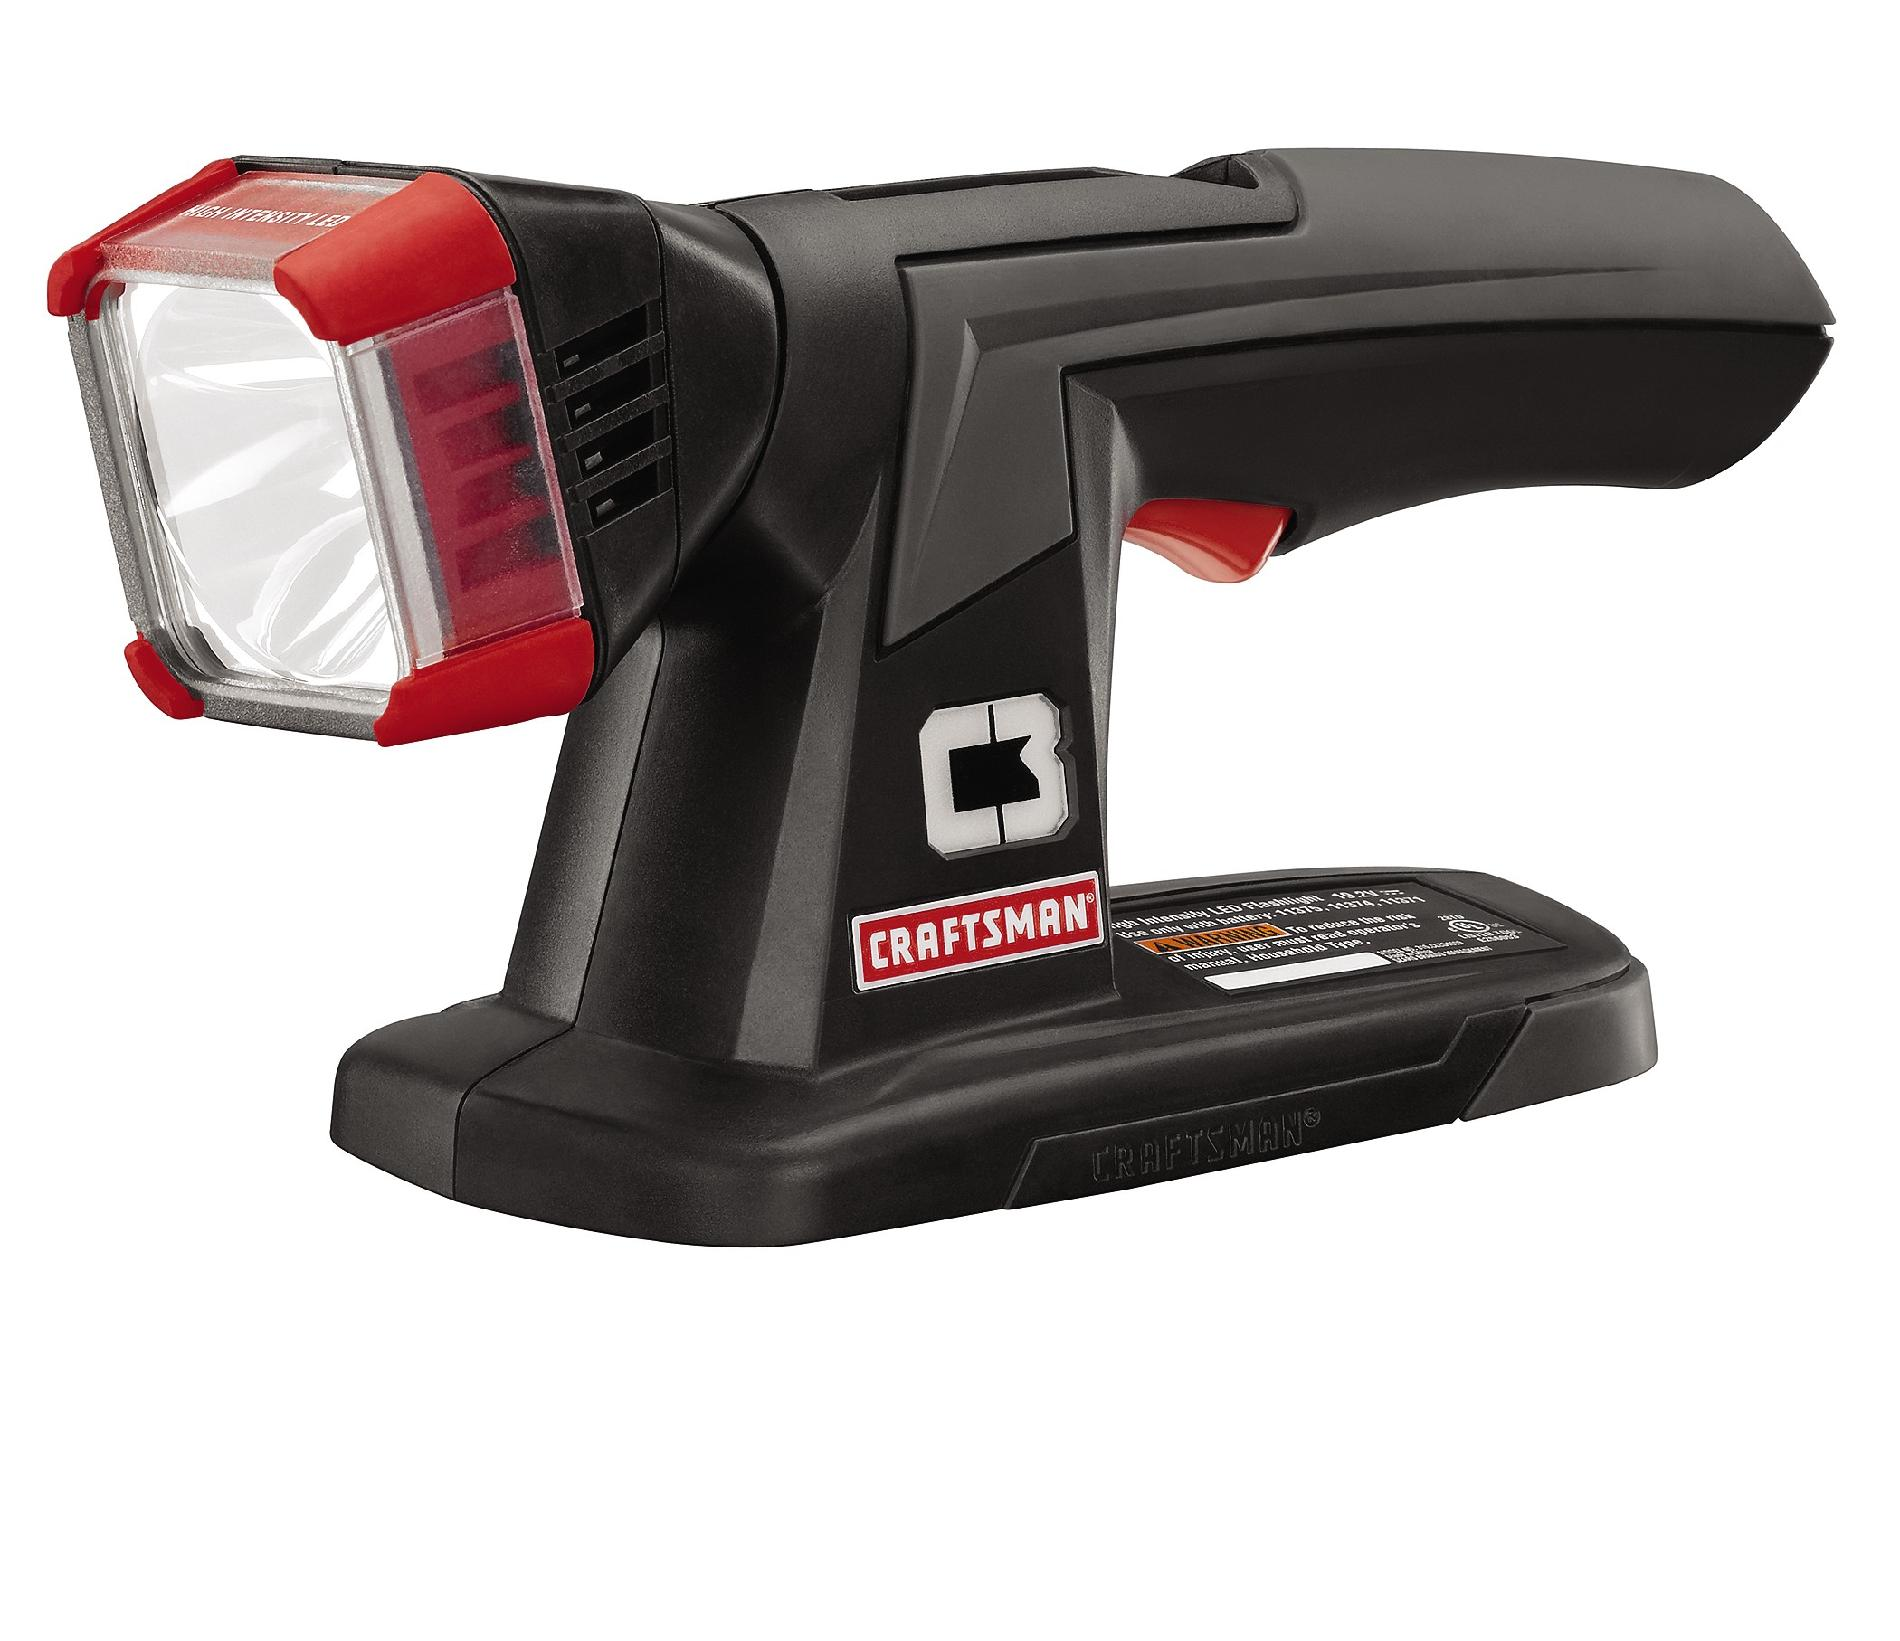 Craftsman C3 19.2-Volt Cordless LED Light